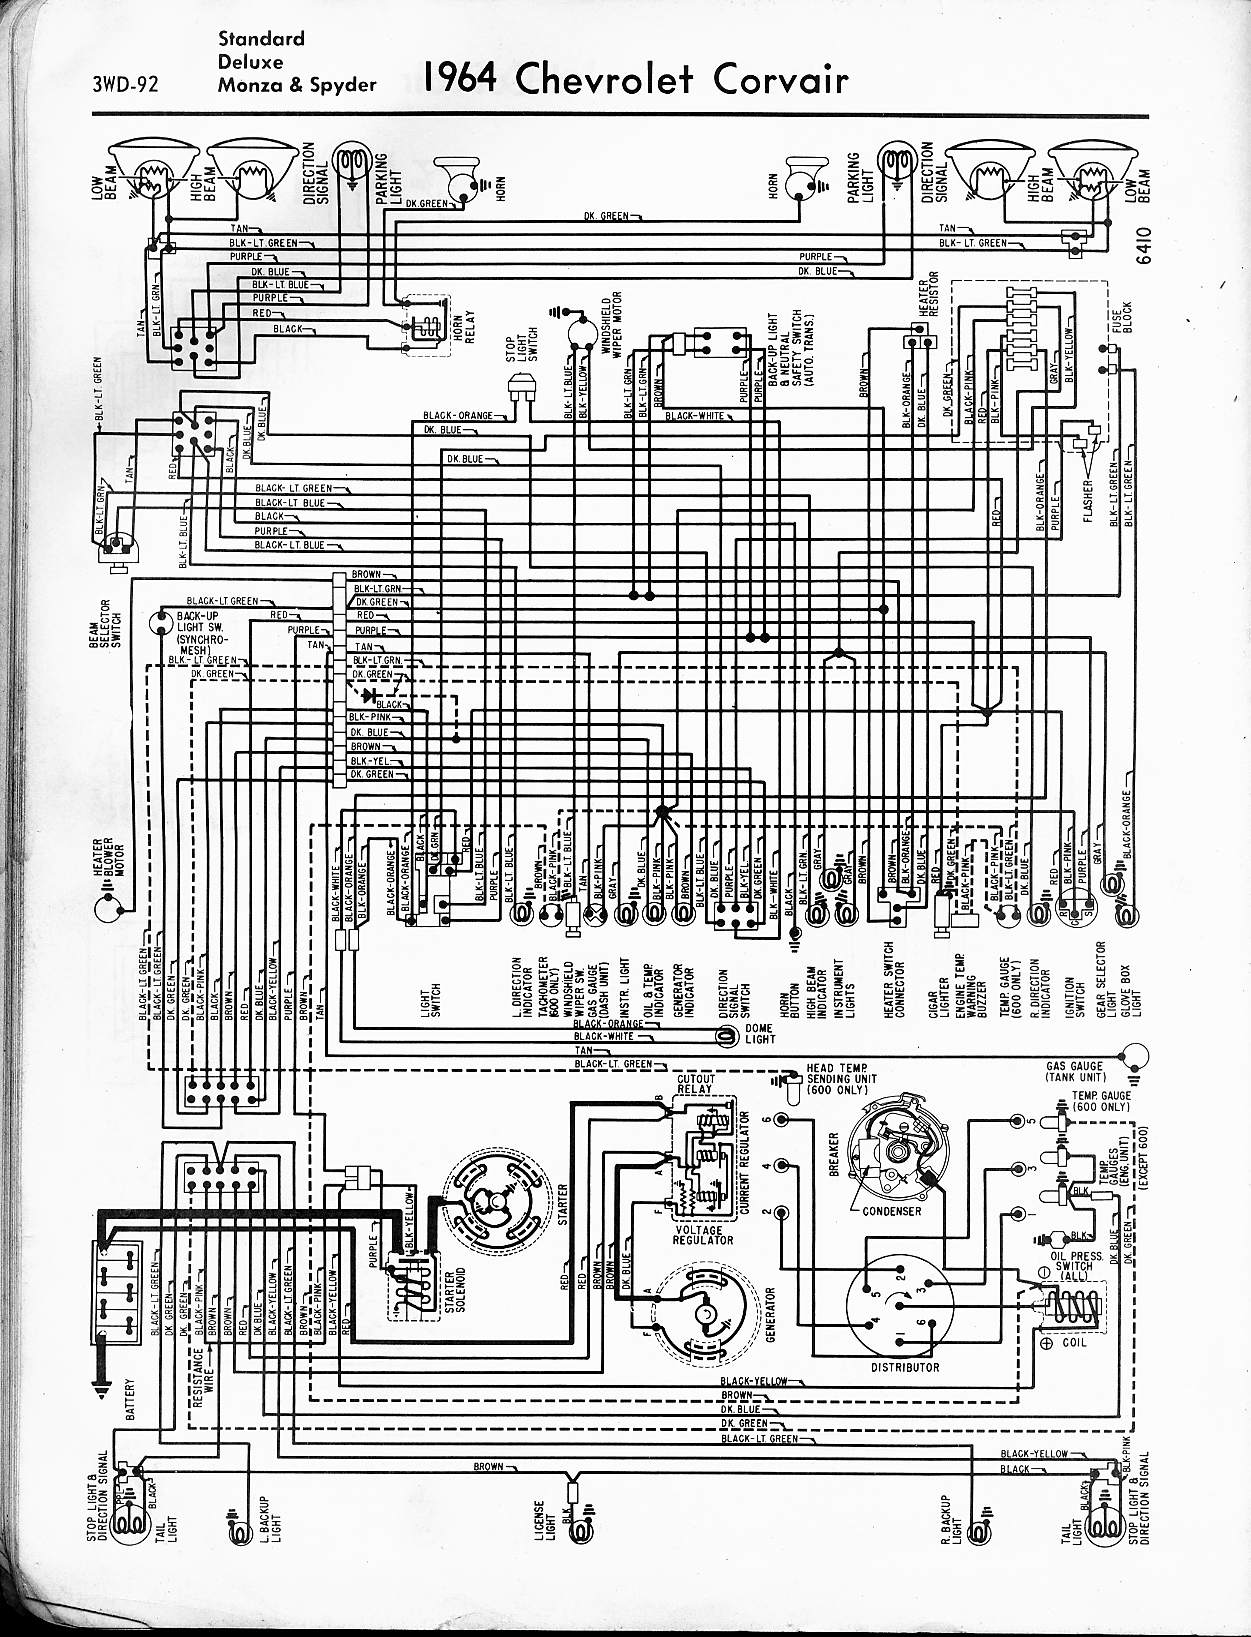 Old Air Conditioner Wiring Diagrams Free Download Wiring Diagram